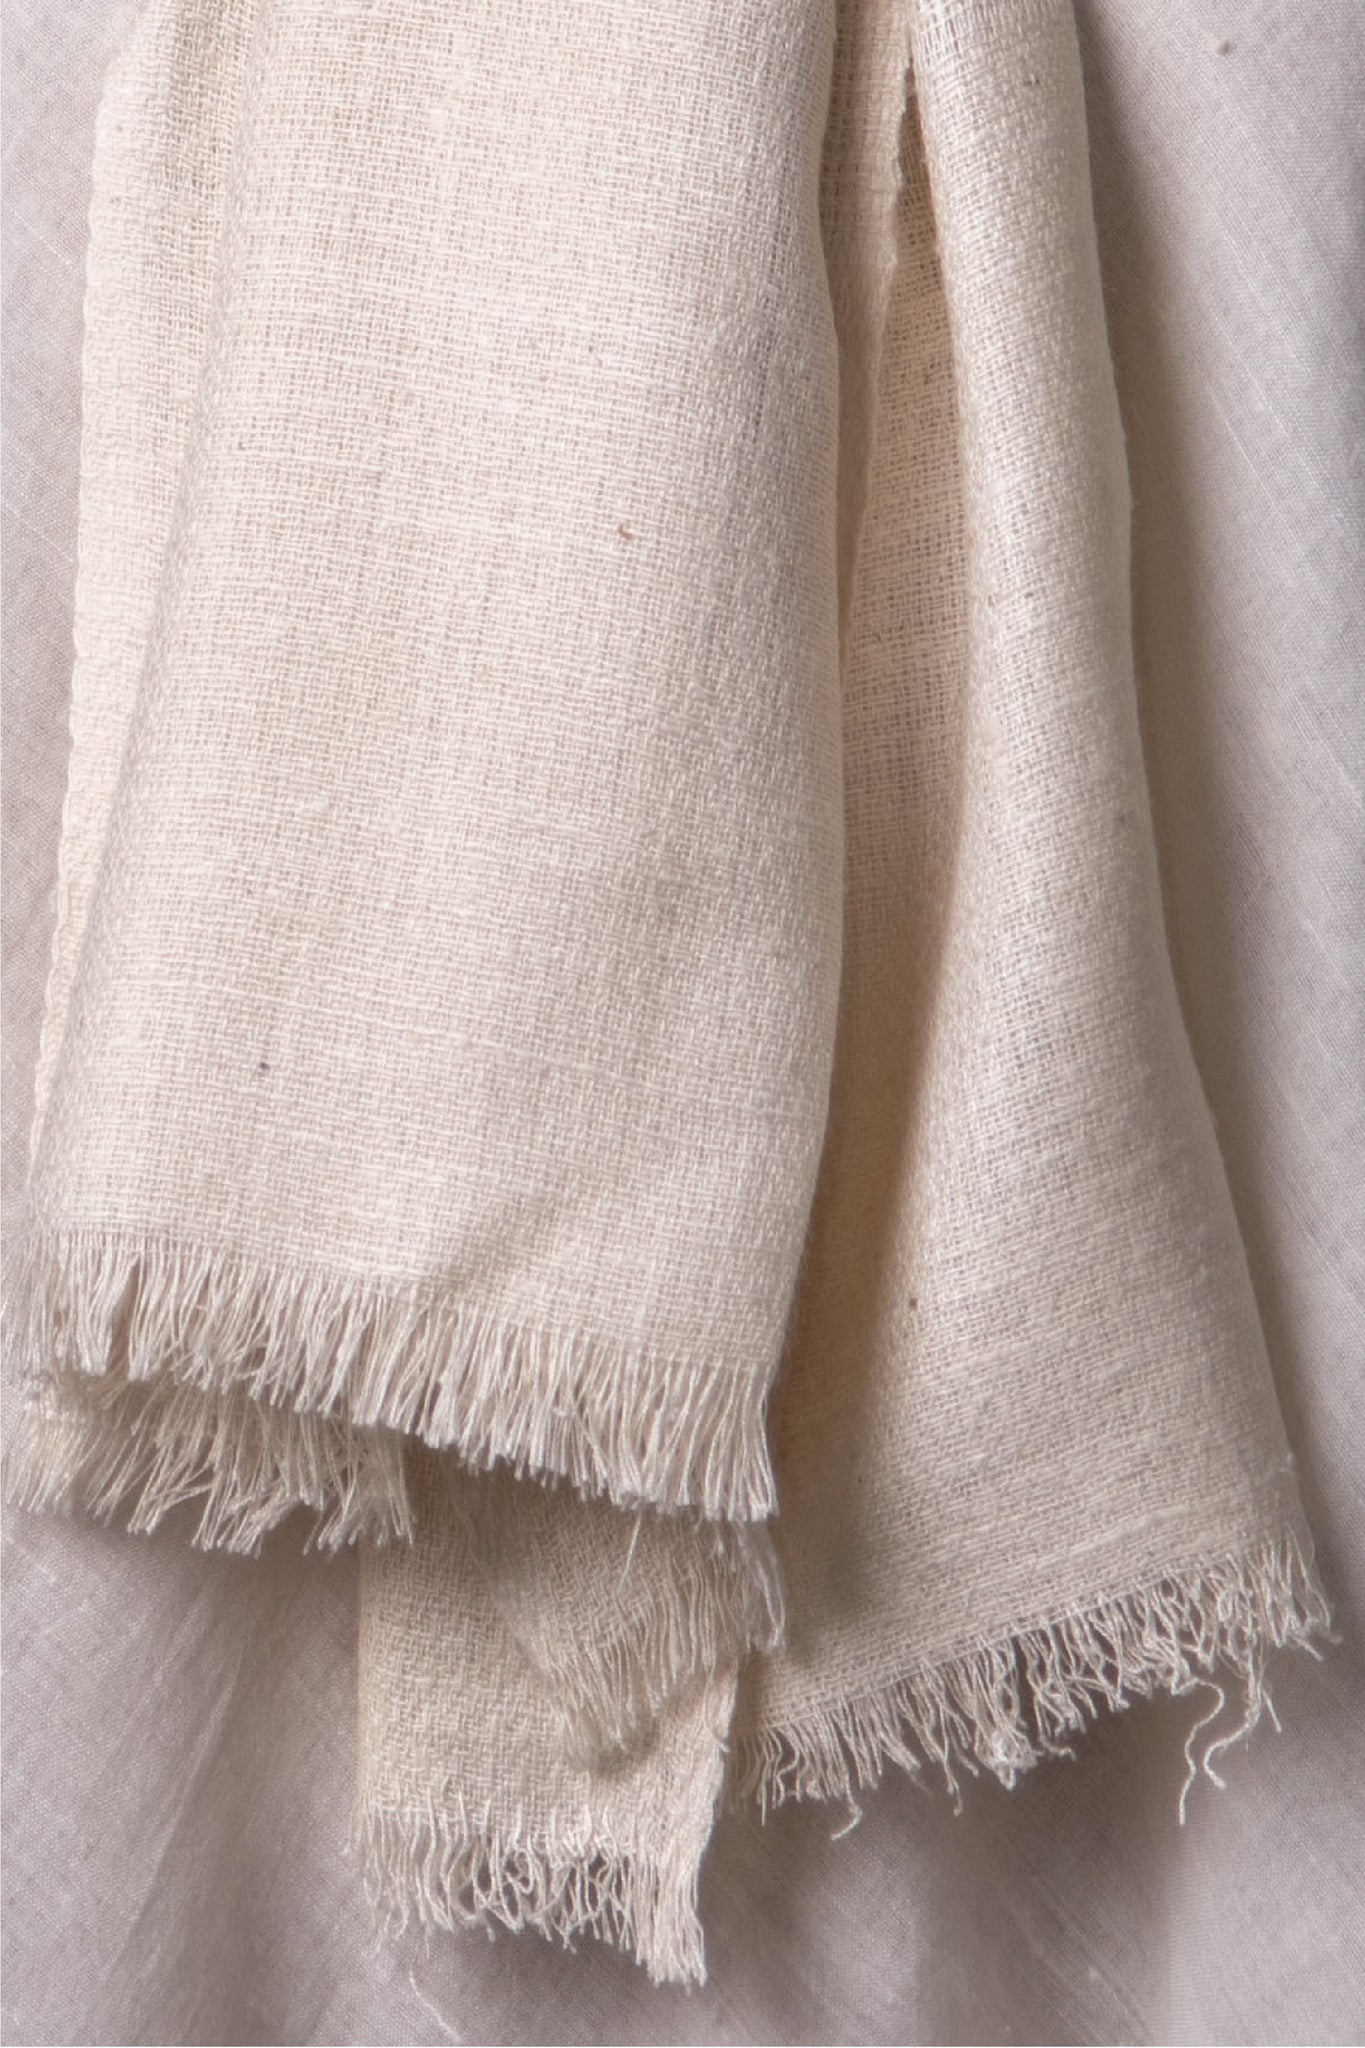 Ereena Butter & Cream Eri Rich Stole cotton-eri-assam-y